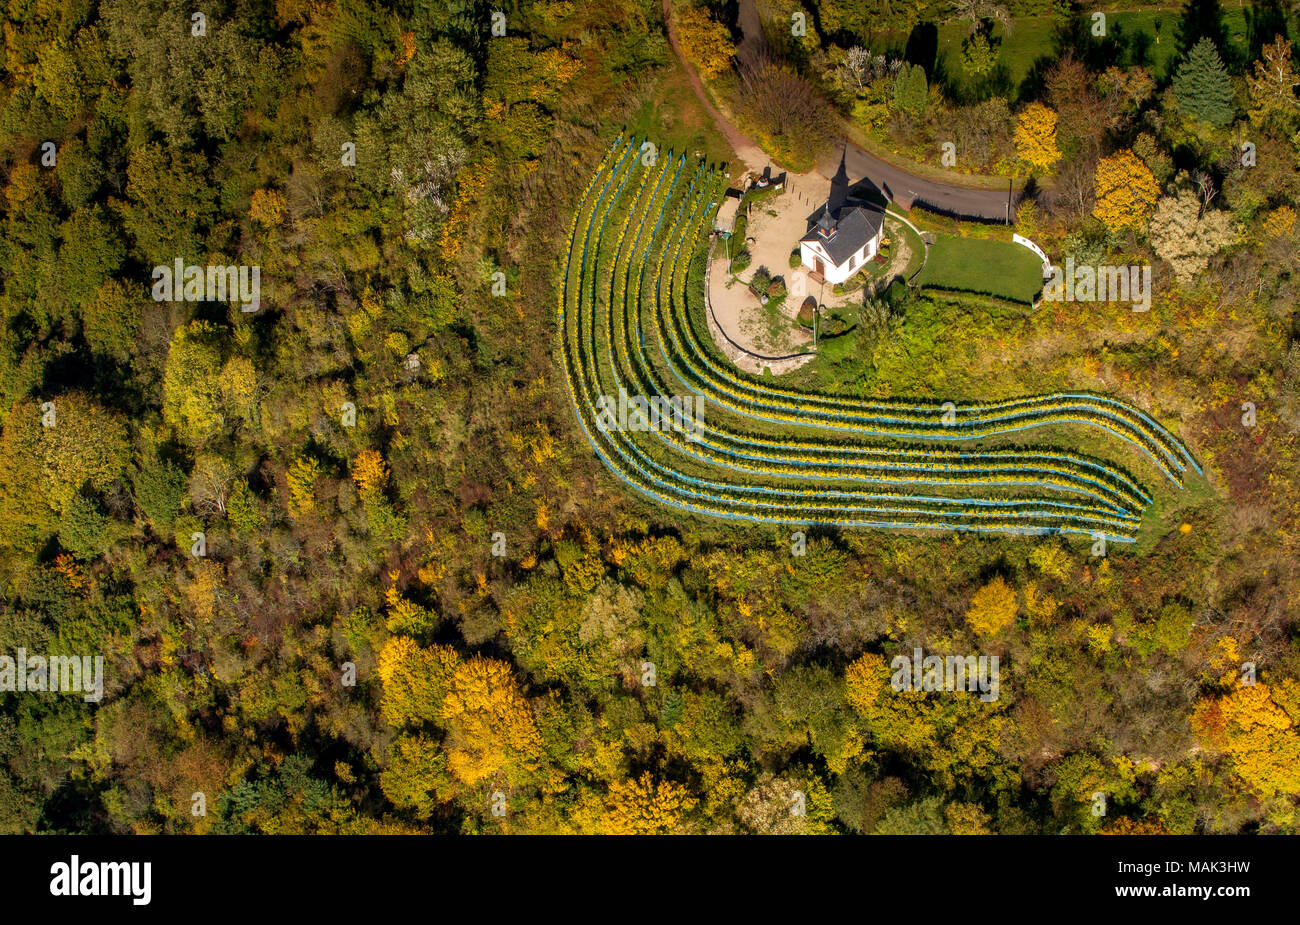 Aerial view, small chapel on the Ellerweg in the midst of vineyards, autumn, autumn leaves, Golden October, Indian Summer, Merzig, Saarland, Germany,  - Stock Image